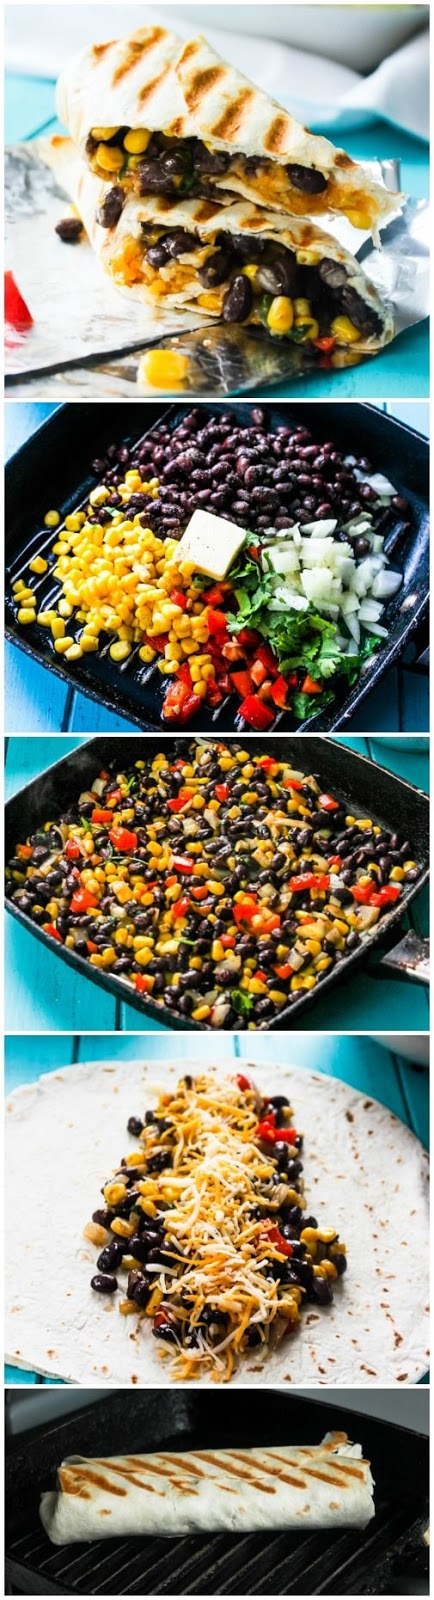 CRISPY BLACK BEAN AND RICE BURRITOS #CRISPY #BLACK #BEAN #AND #RICE #BURRITOS  #HEALTHYFOOD #EASYRECIPES #DINNER #LAUCH #DELICIOUS #EASY #HOLIDAYS #RECIPE #DESSERTS #SPECIALDIET #WORLDCUISINE #CAKE #APPETIZERS #HEALTHYRECIPES #DRINKS #COOKINGMETHOD #ITALIANRECIPES #MEAT #VEGANRECIPES #COOKIES #PASTA #FRUIT #SALAD #SOUPAPPETIZERS #NONALCOHOLICDRINKS #MEALPLANNING #VEGETABLES #SOUP #PASTRY #CHOCOLATE #DAIRY #ALCOHOLICDRINKS #BULGURSALAD #BAKING #SNACKS #BEEFRECIPES #MEATAPPETIZERS #MEXICANRECIPES #BREAD #ASIANRECIPES #SEAFOODAPPETIZERS #MUFFINS #BREAKFASTANDBRUNCH #CONDIMENTS #CUPCAKES #CHEESE #CHICKENRECIPES #PIE #COFFEE #NOBAKEDESSERTS #HEALTHYSNACKS #SEAFOOD #GRAIN #LUNCHESDINNERS #MEXICAN #QUICKBREAD #LIQUOR